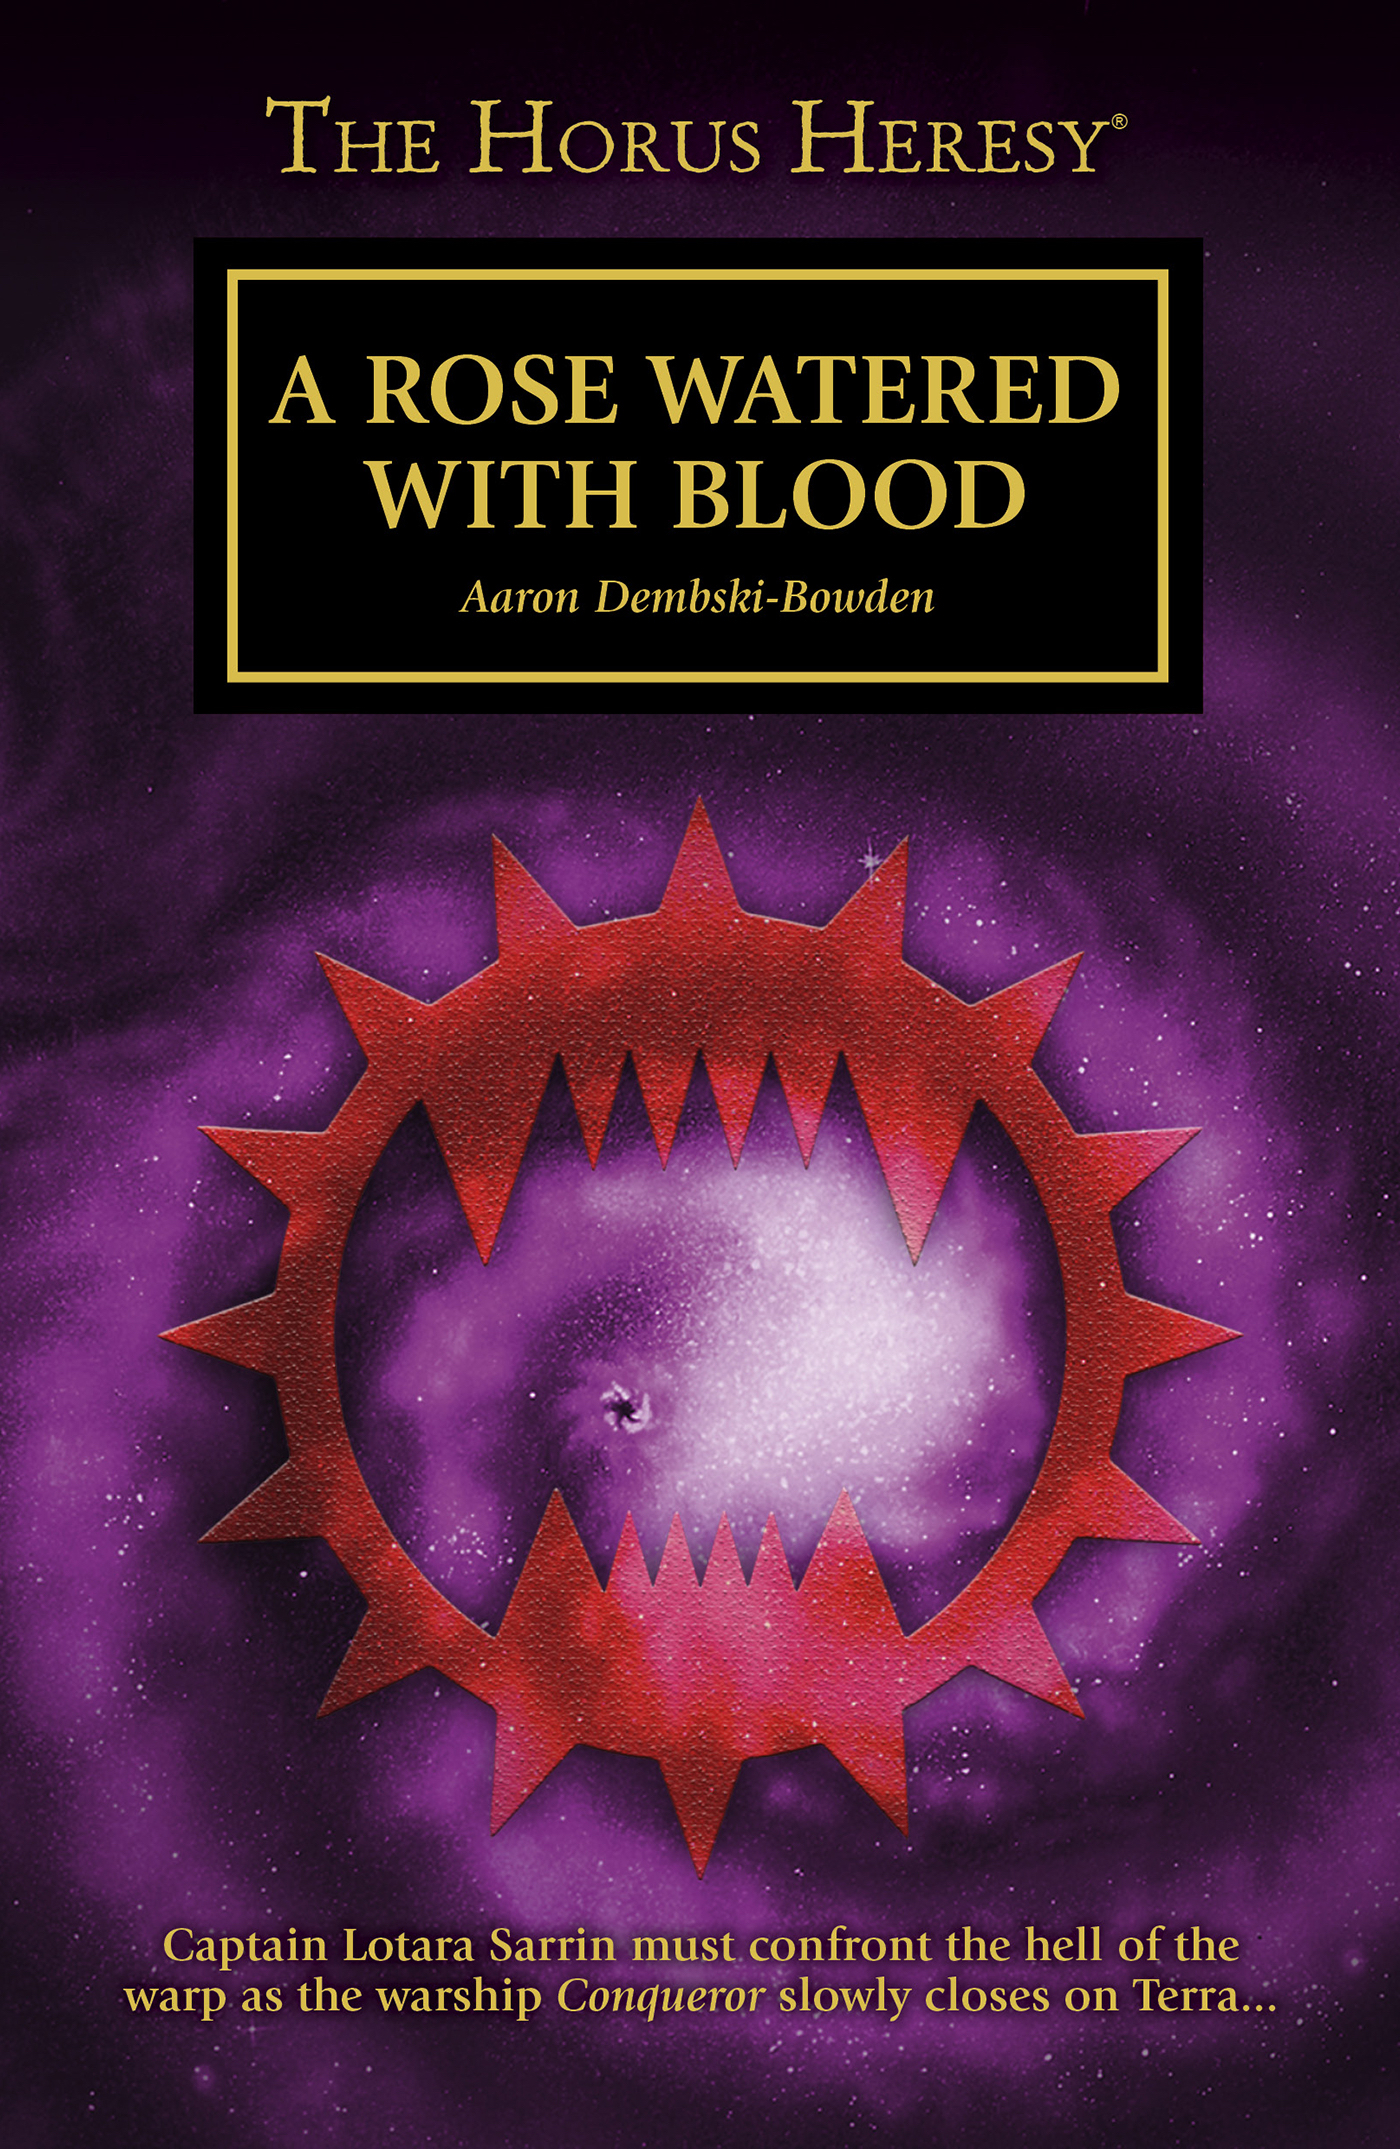 A Rose Watered with Blood by Aaron Dembski-Bowden